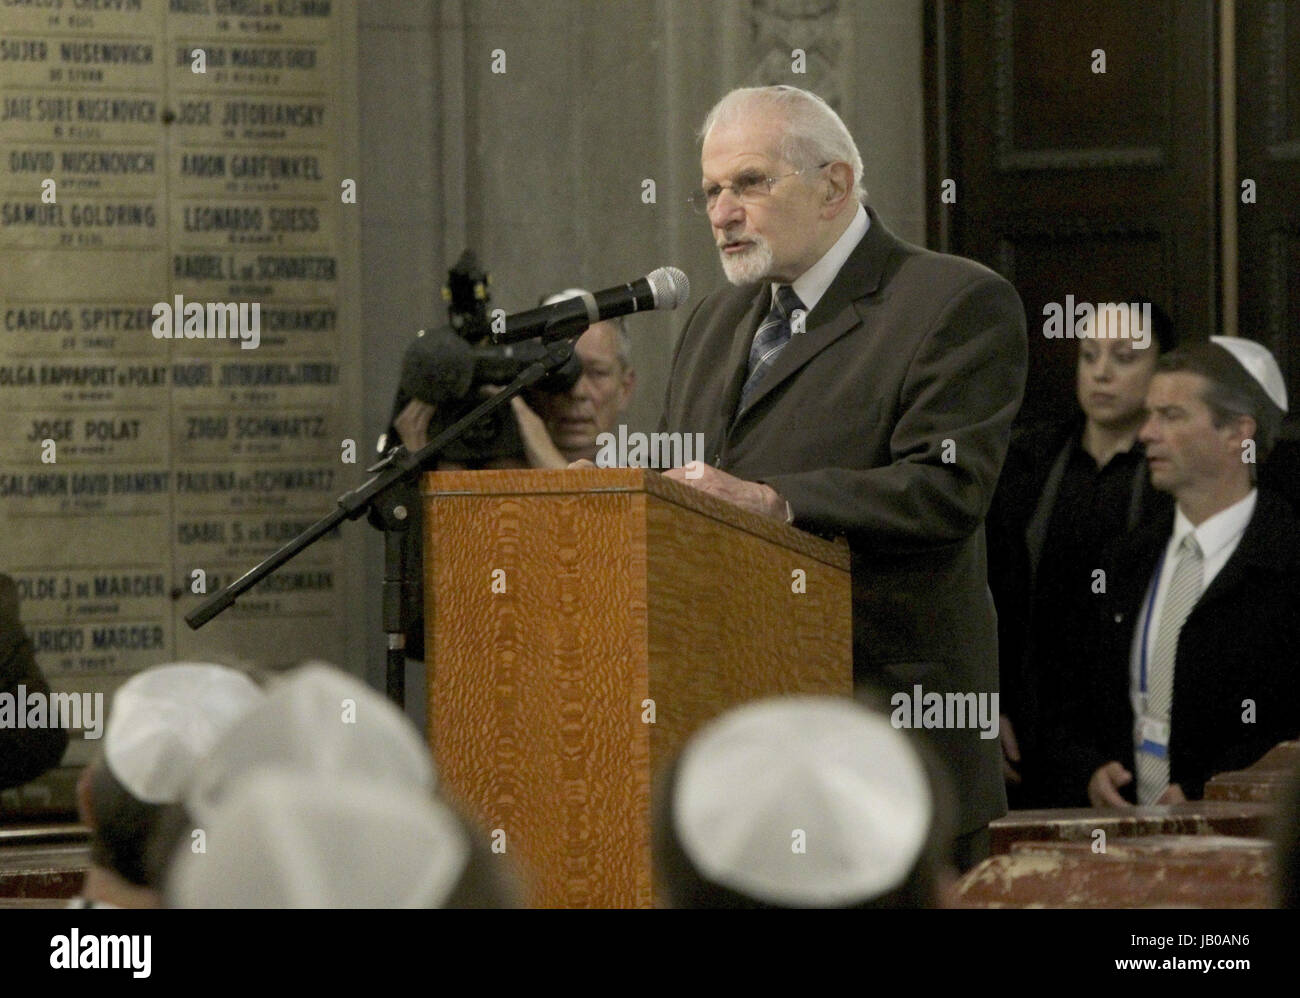 Buenos Aires, Argentina. 08th June, 2017. Argentinian rabbin Simos Moguilevsky gives a speech during the visit of Stock Photo